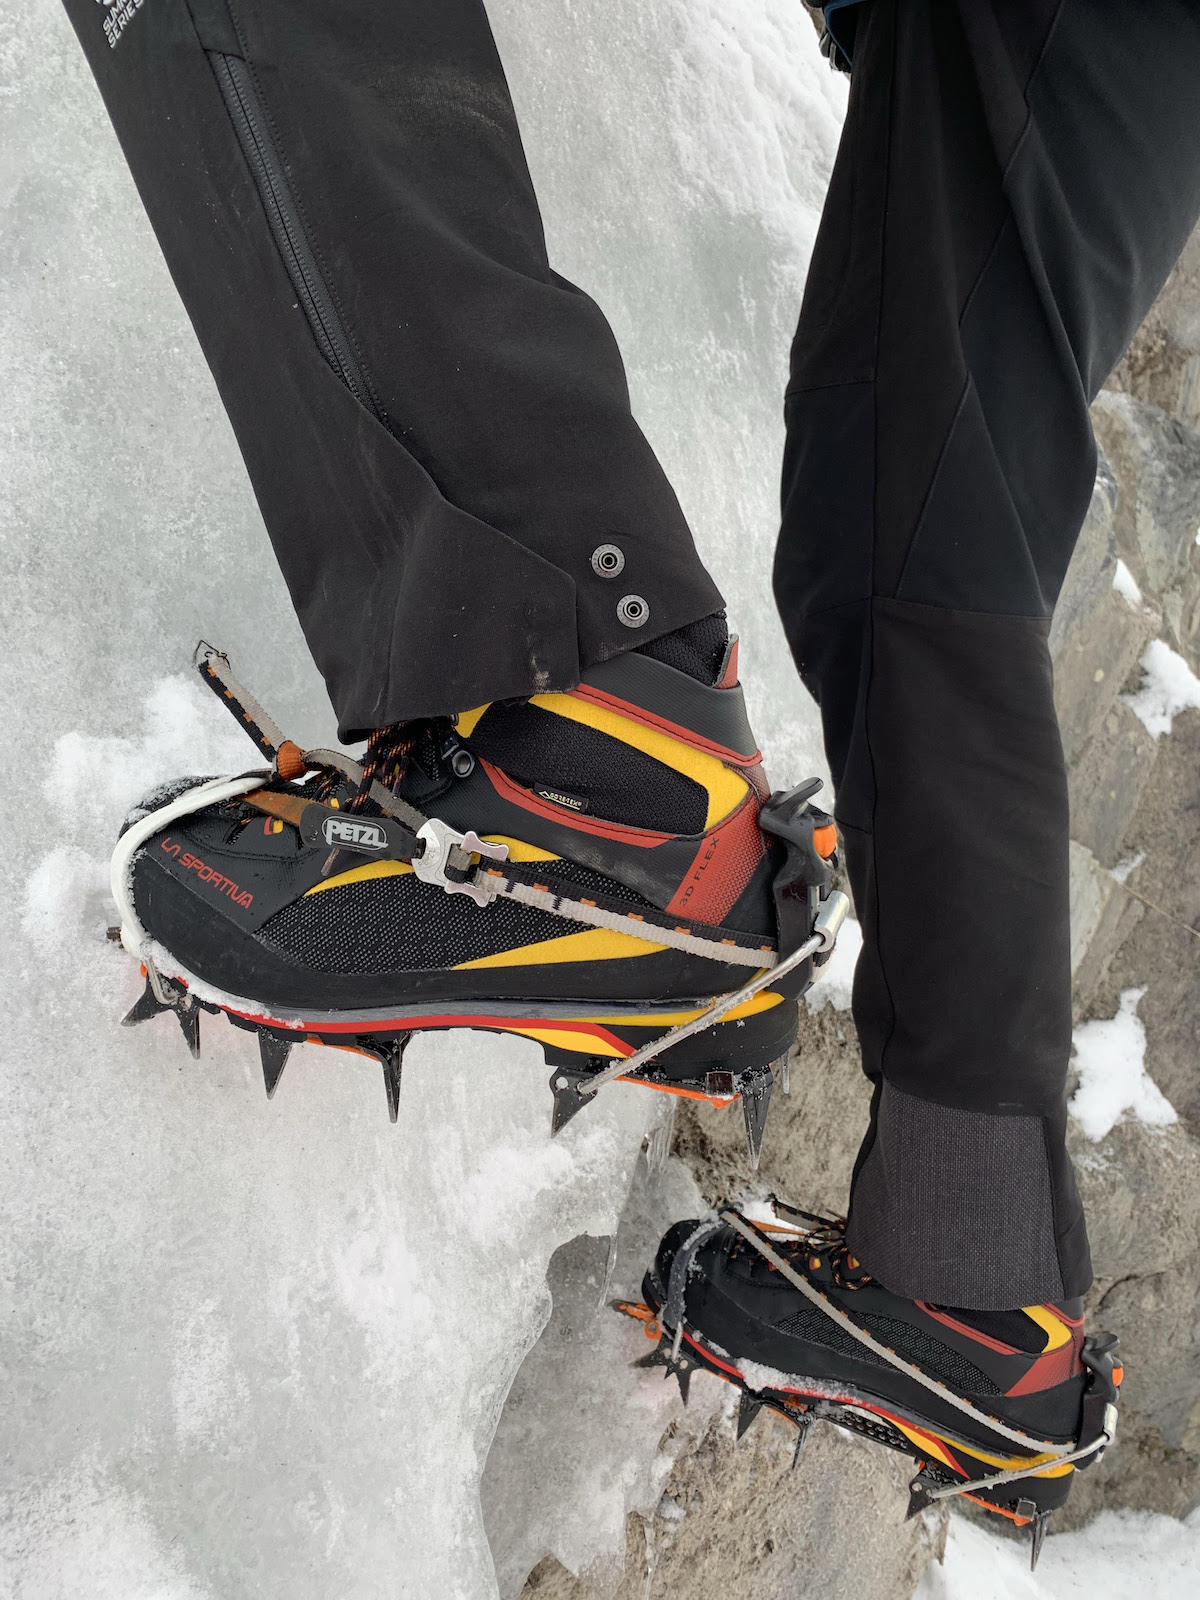 Close up of the La Sportiva Trango Tower Extreme boots in action. [Photo] John Giraldo